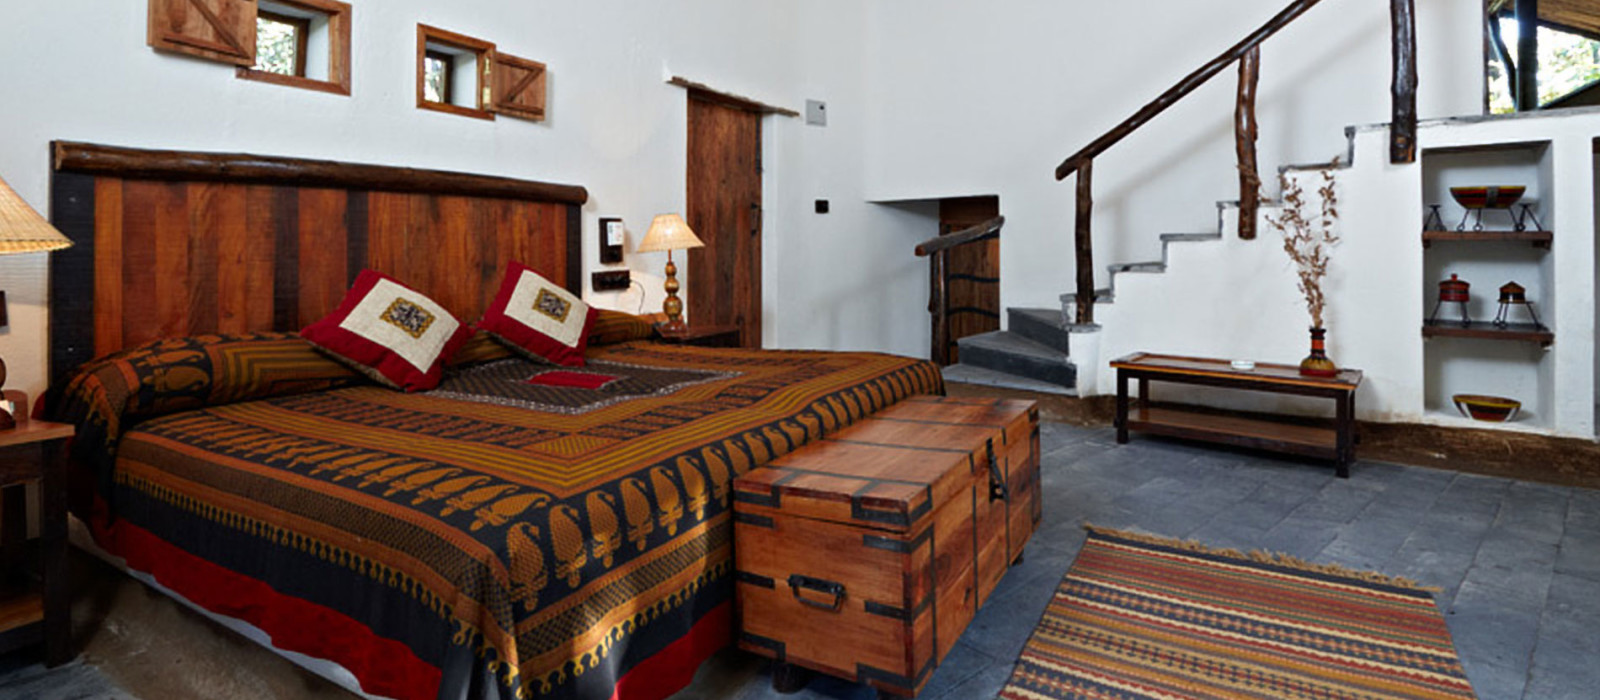 Hotel Reni Pani Central & West India